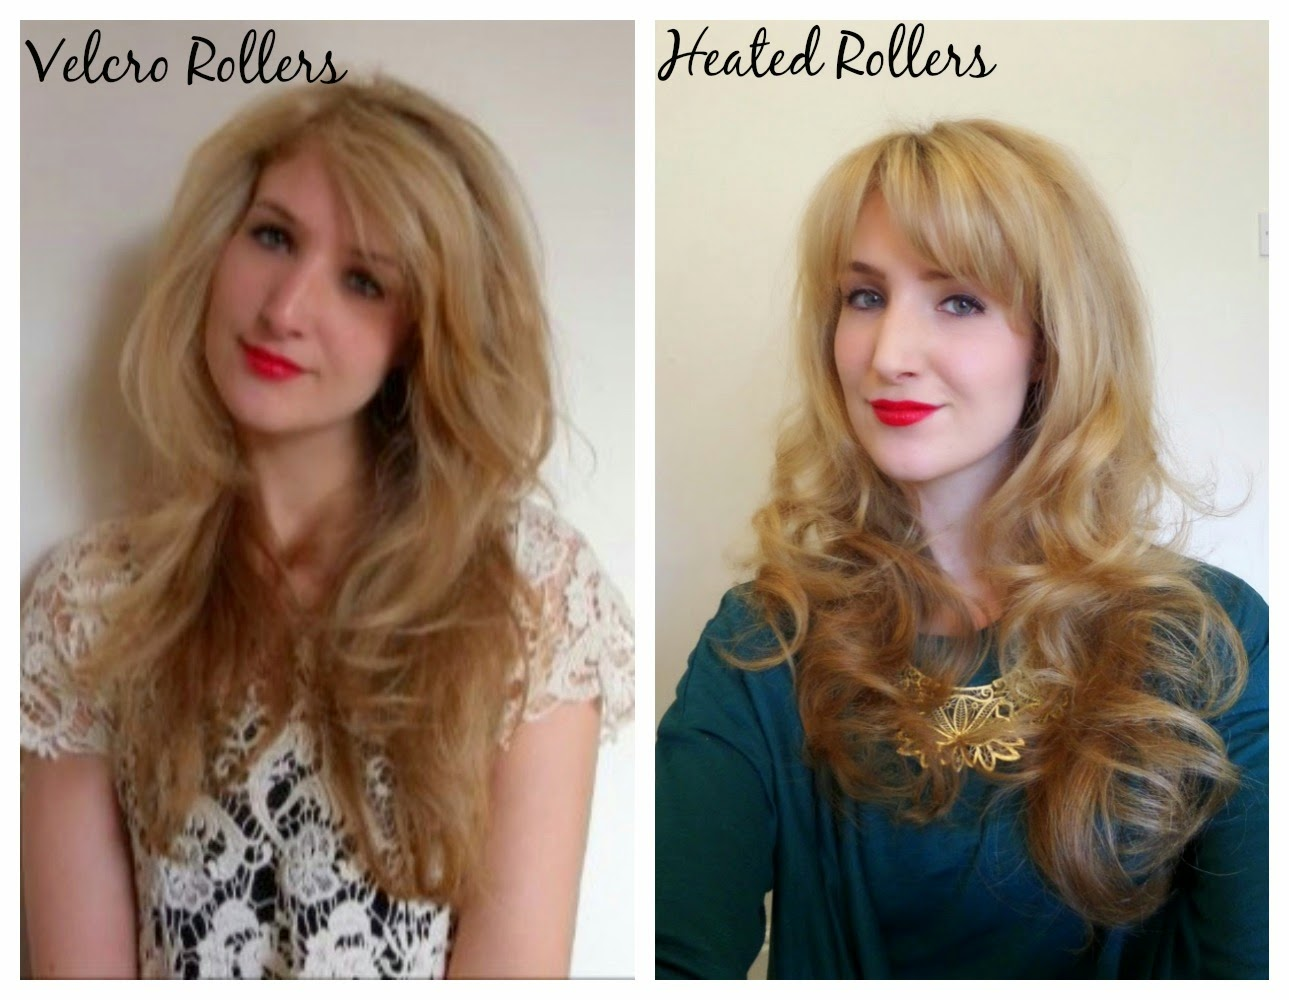 Velcro Rollers Vs Heated Rollers What S The Difference